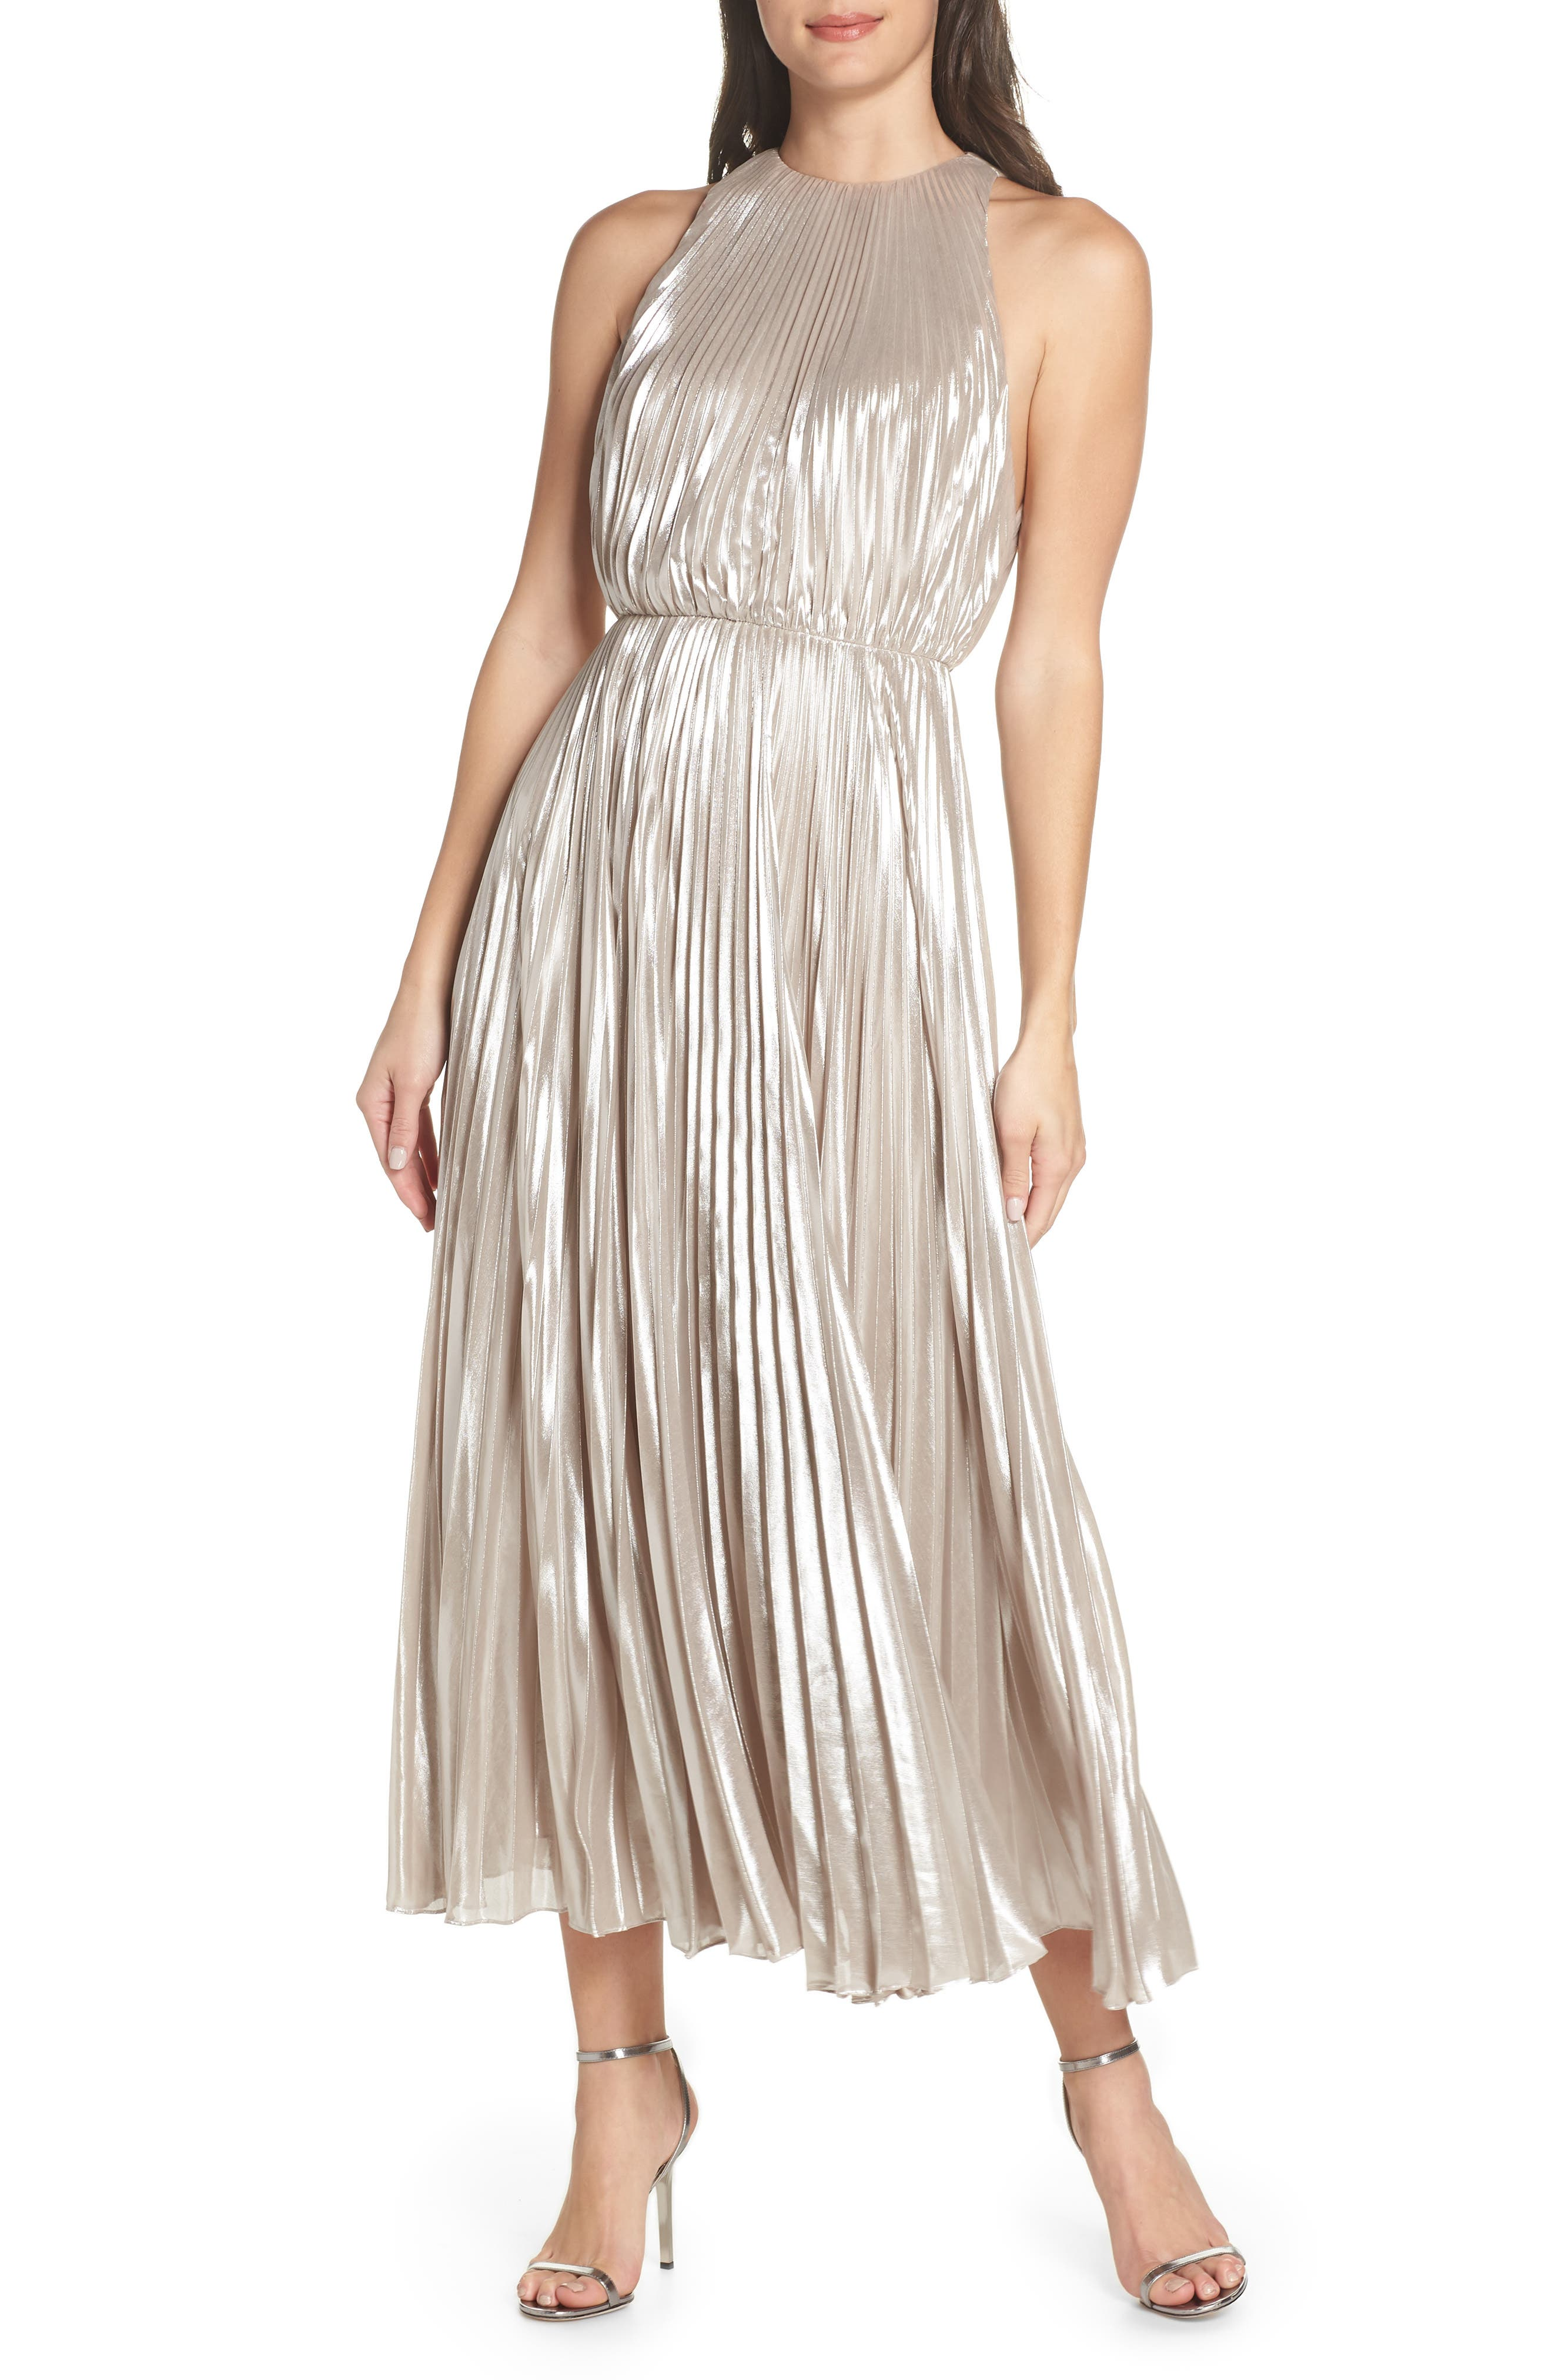 Pleated Metallic Dress,                             Main thumbnail 1, color,                             CHAMPAGNE